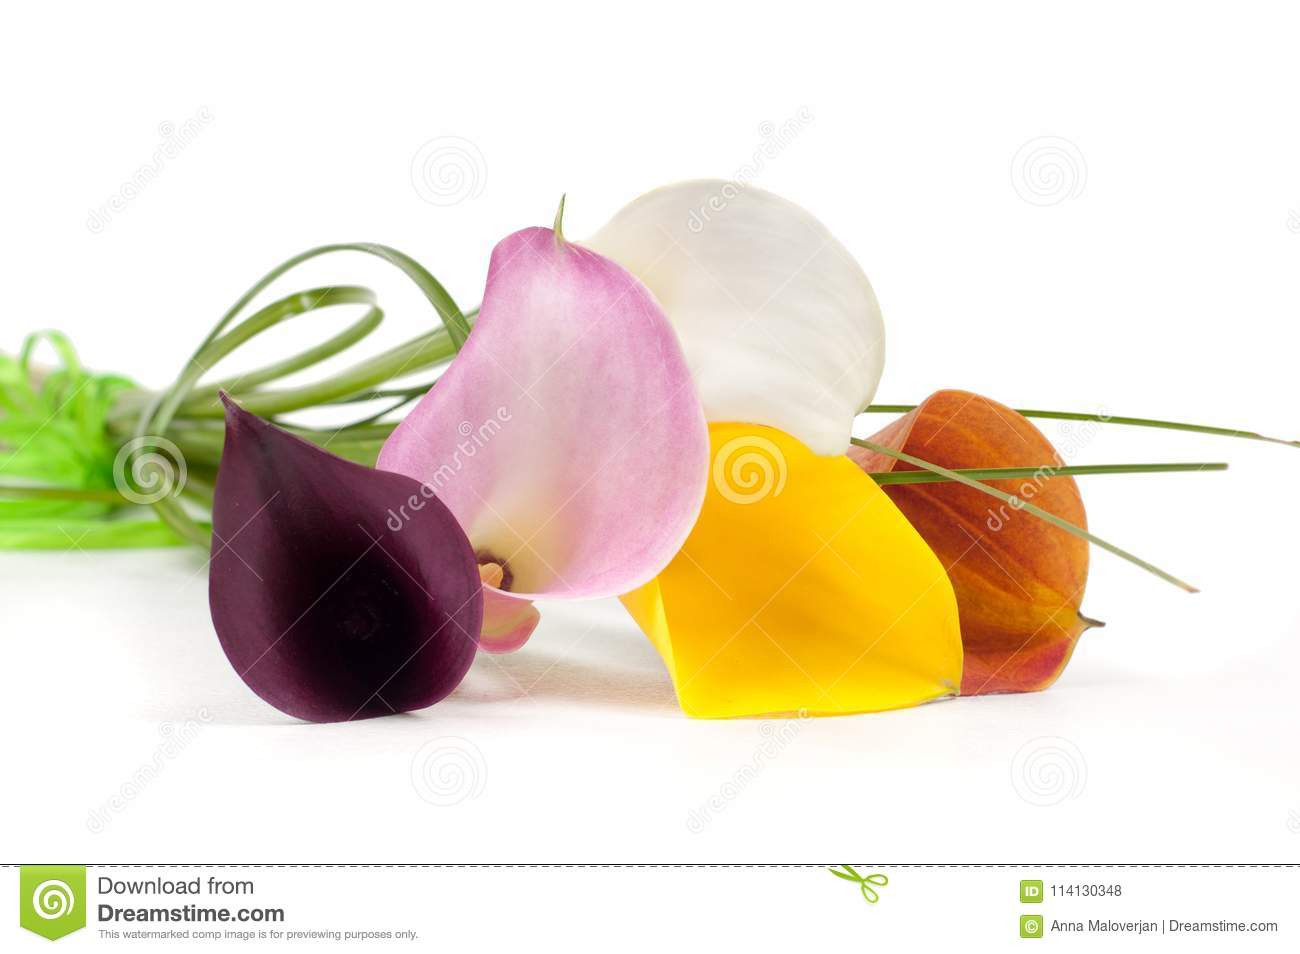 11 Amazing Calla Lily In Vase Photo 2021 free download calla lily in vase photo of calla lilies flowers stock photo image of closeup delicate 114130348 with calla lilies flowers